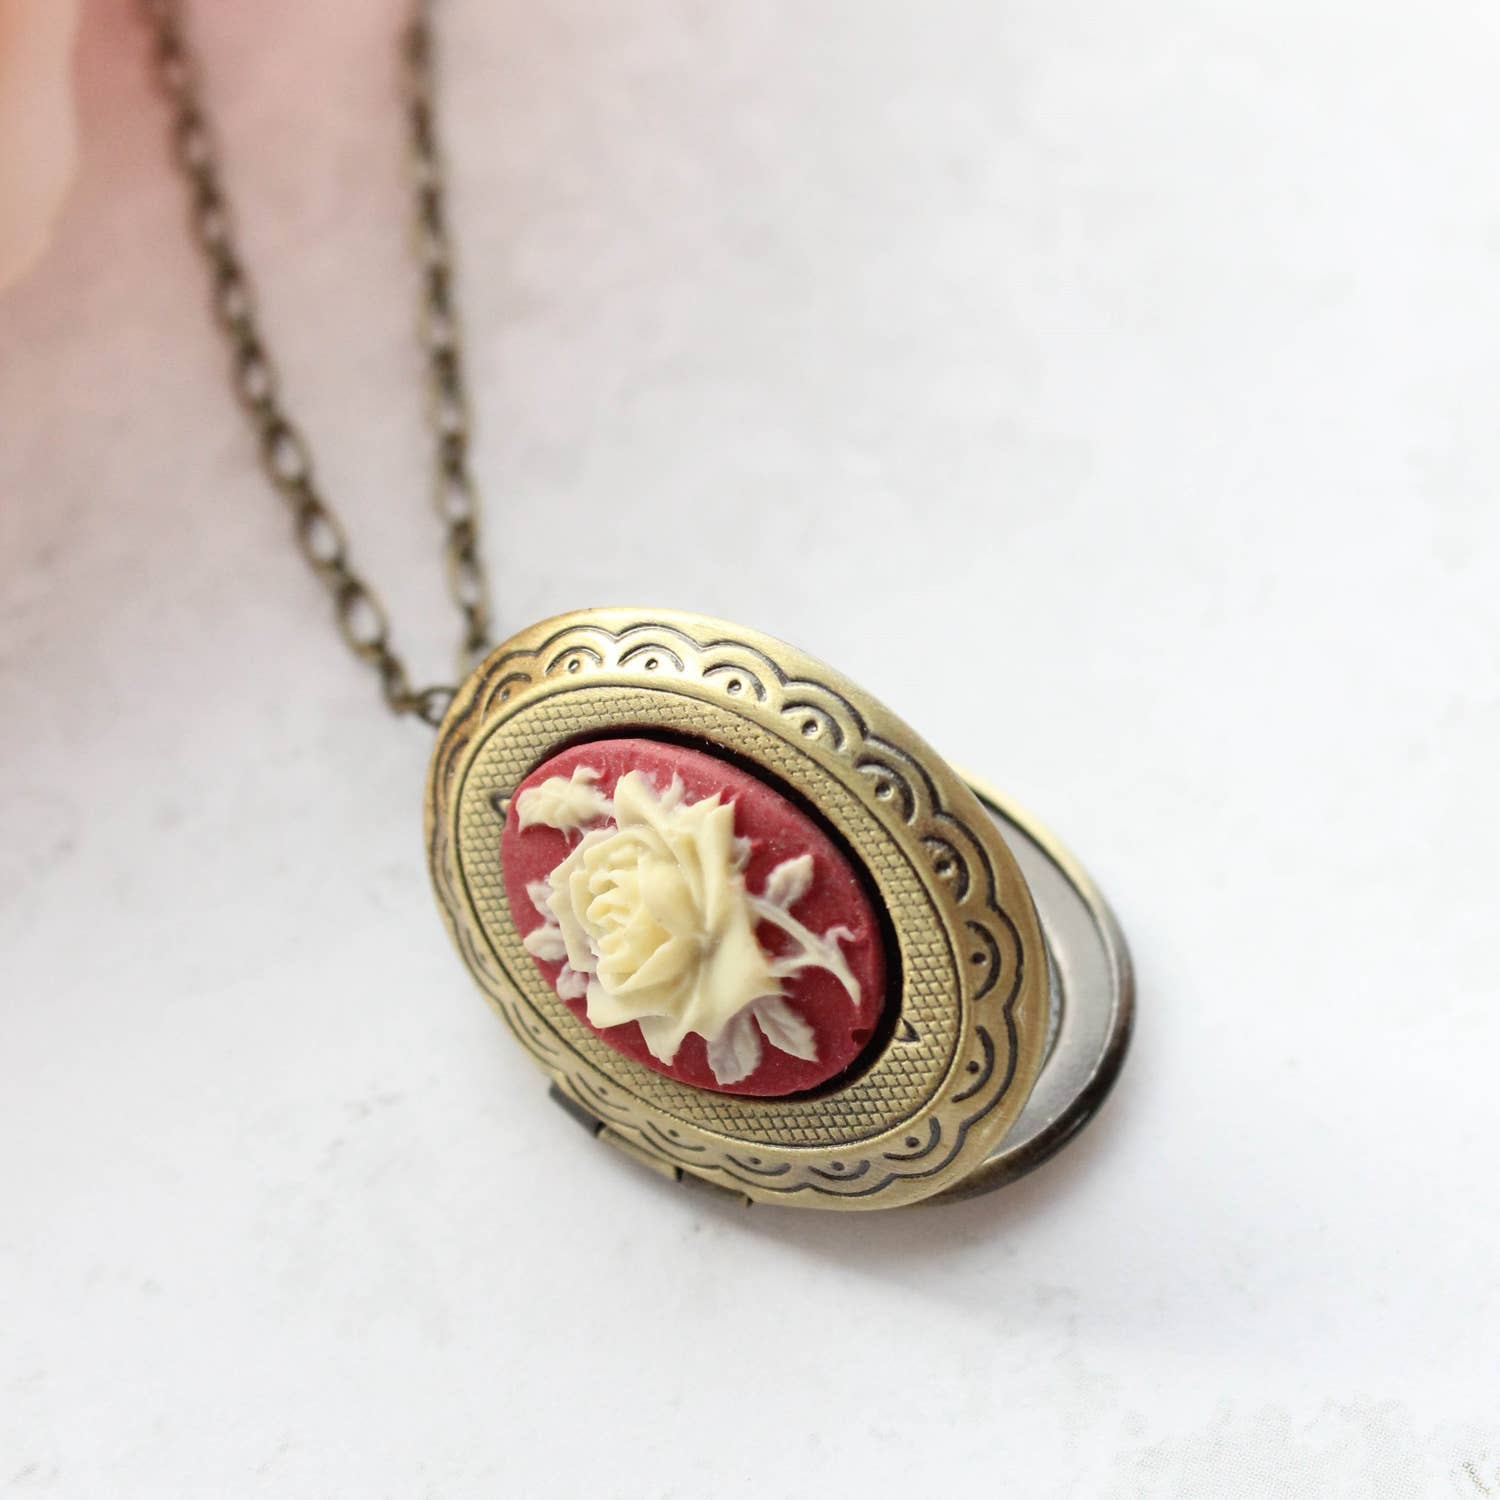 Cameo Locket Necklace - Red Rose